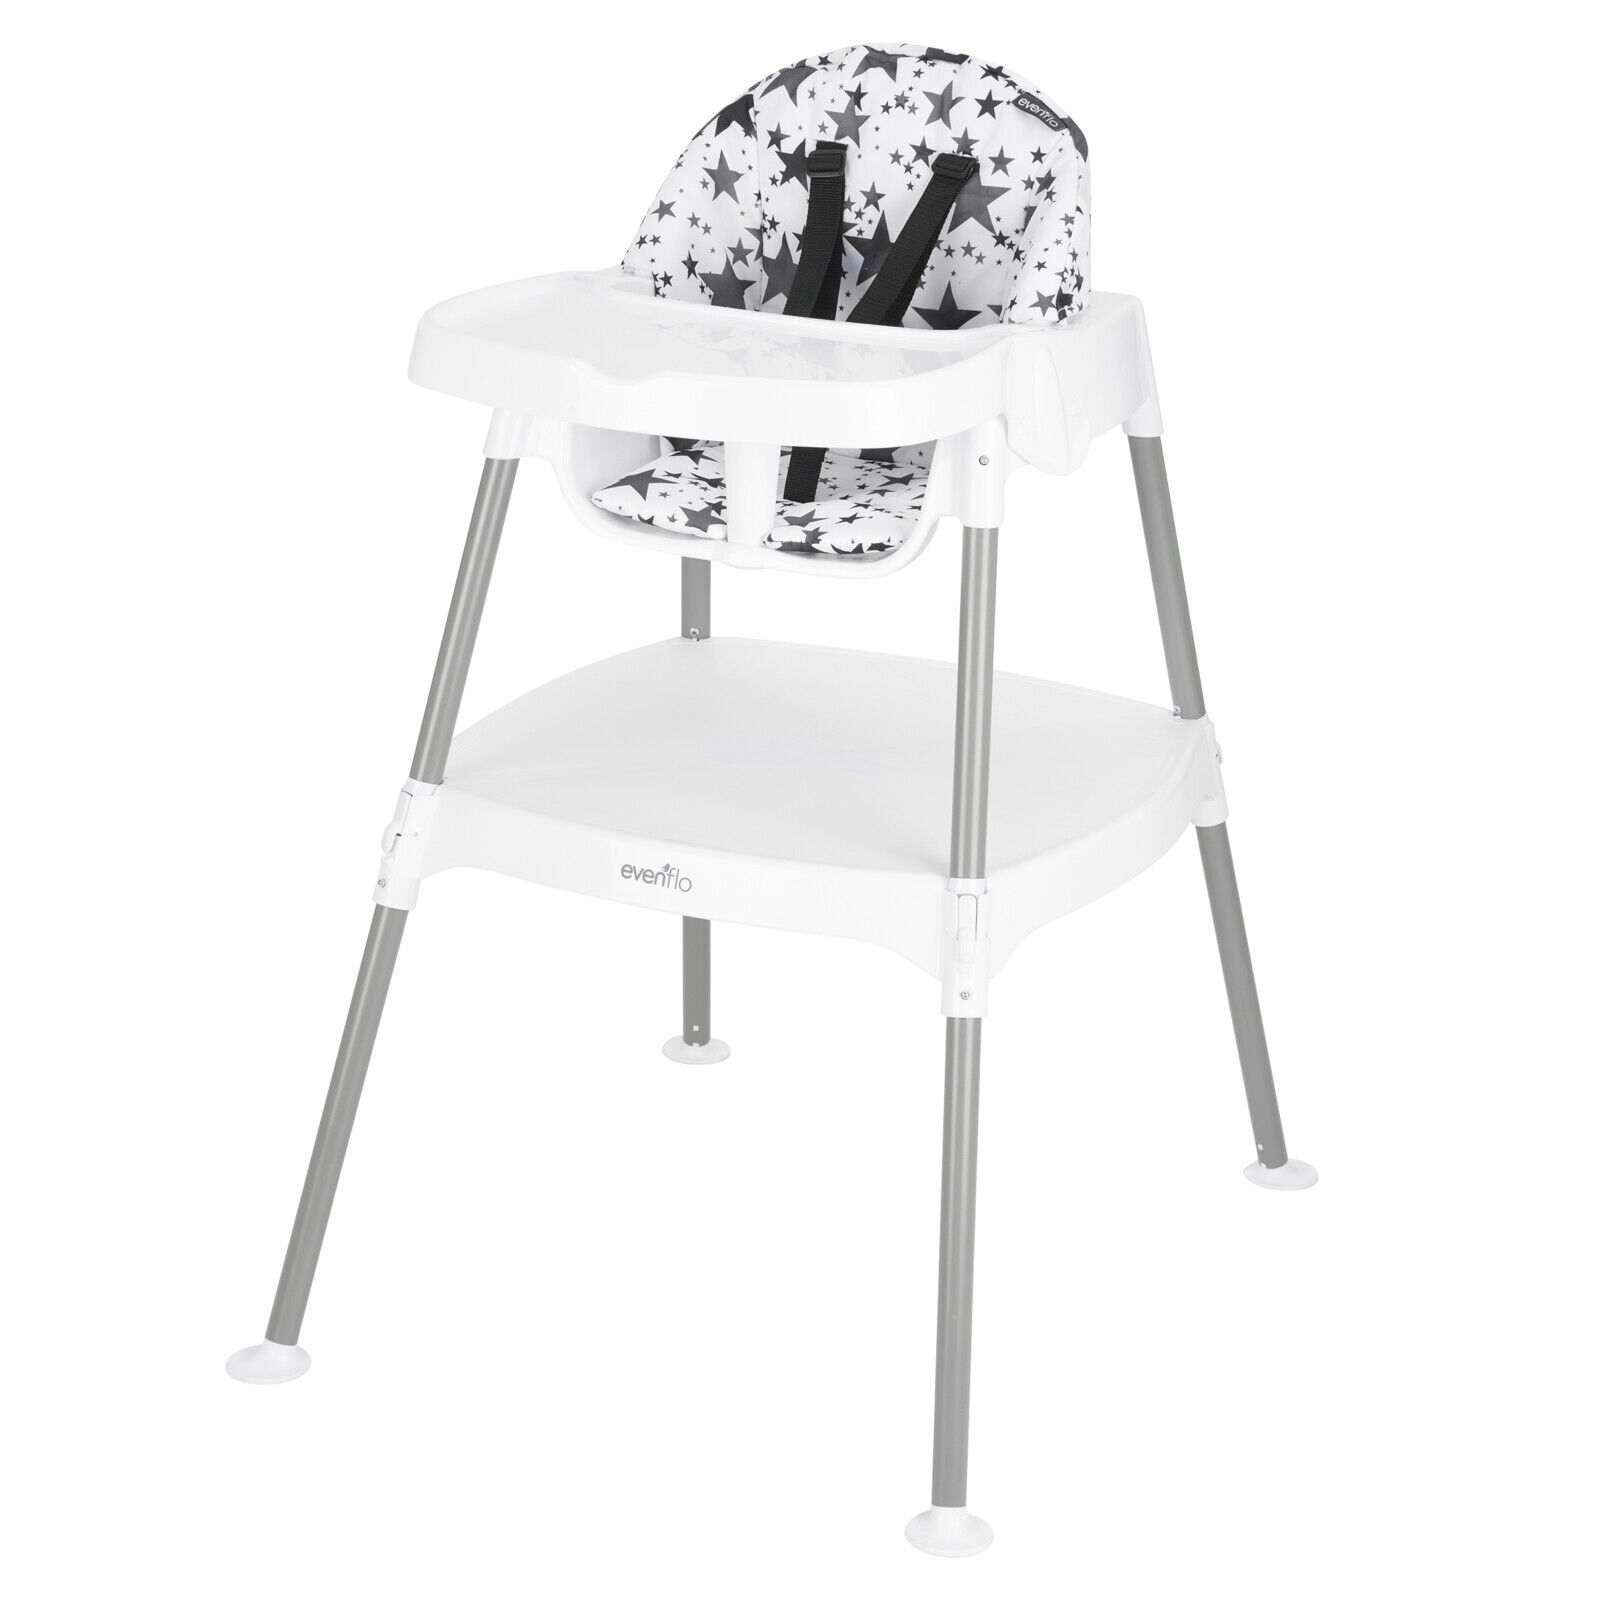 Convertible High Chair 4-in-1 Eat & Grow